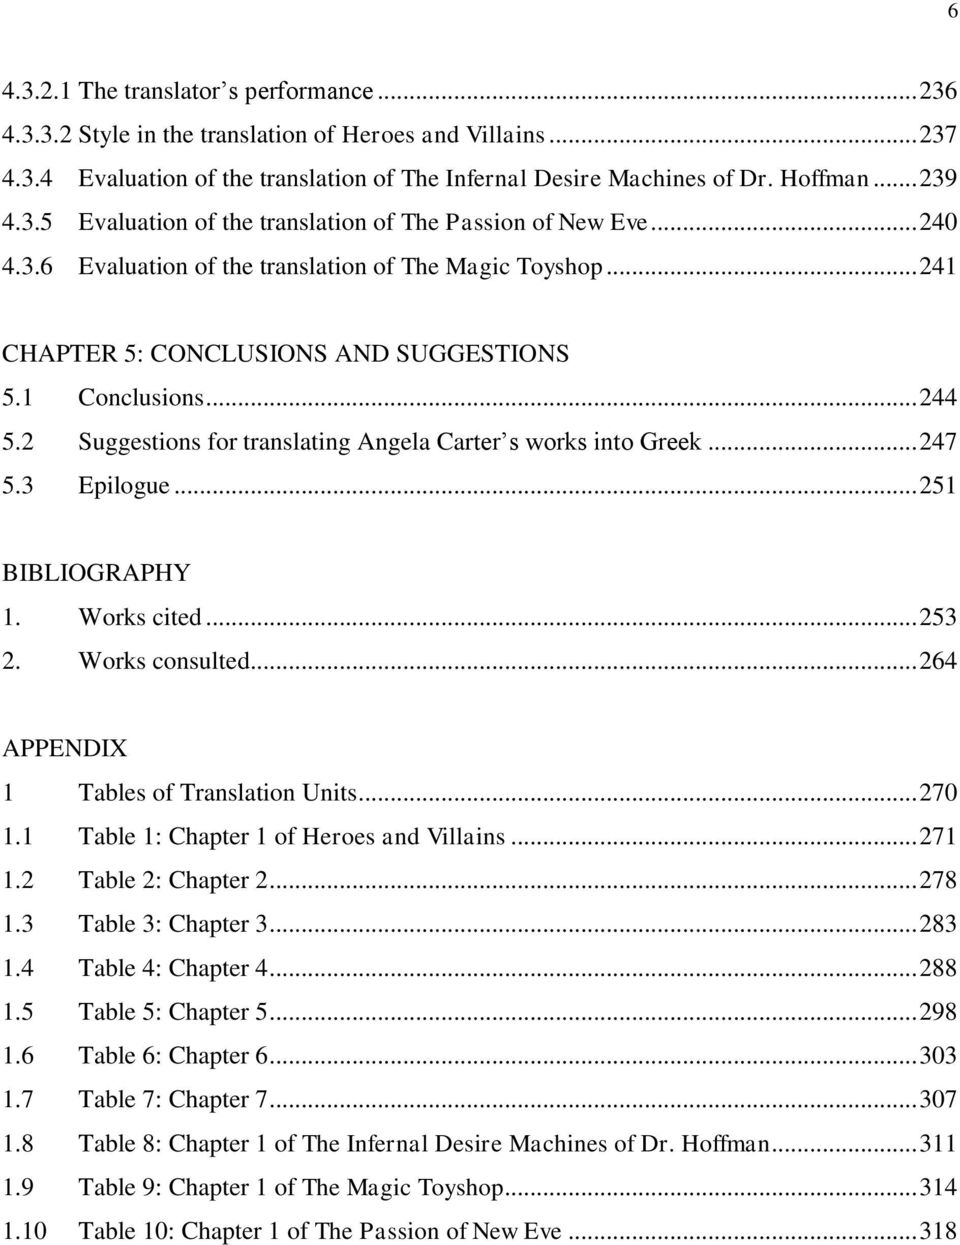 2 Suggestions for translating Angela Carter s works into Greek... 247 5.3 Epilogue... 251 BIBLIOGRAPHY 1. Works cited... 253 2. Works consulted... 264 APPENDIX 1 Tables of Translation Units... 270 1.